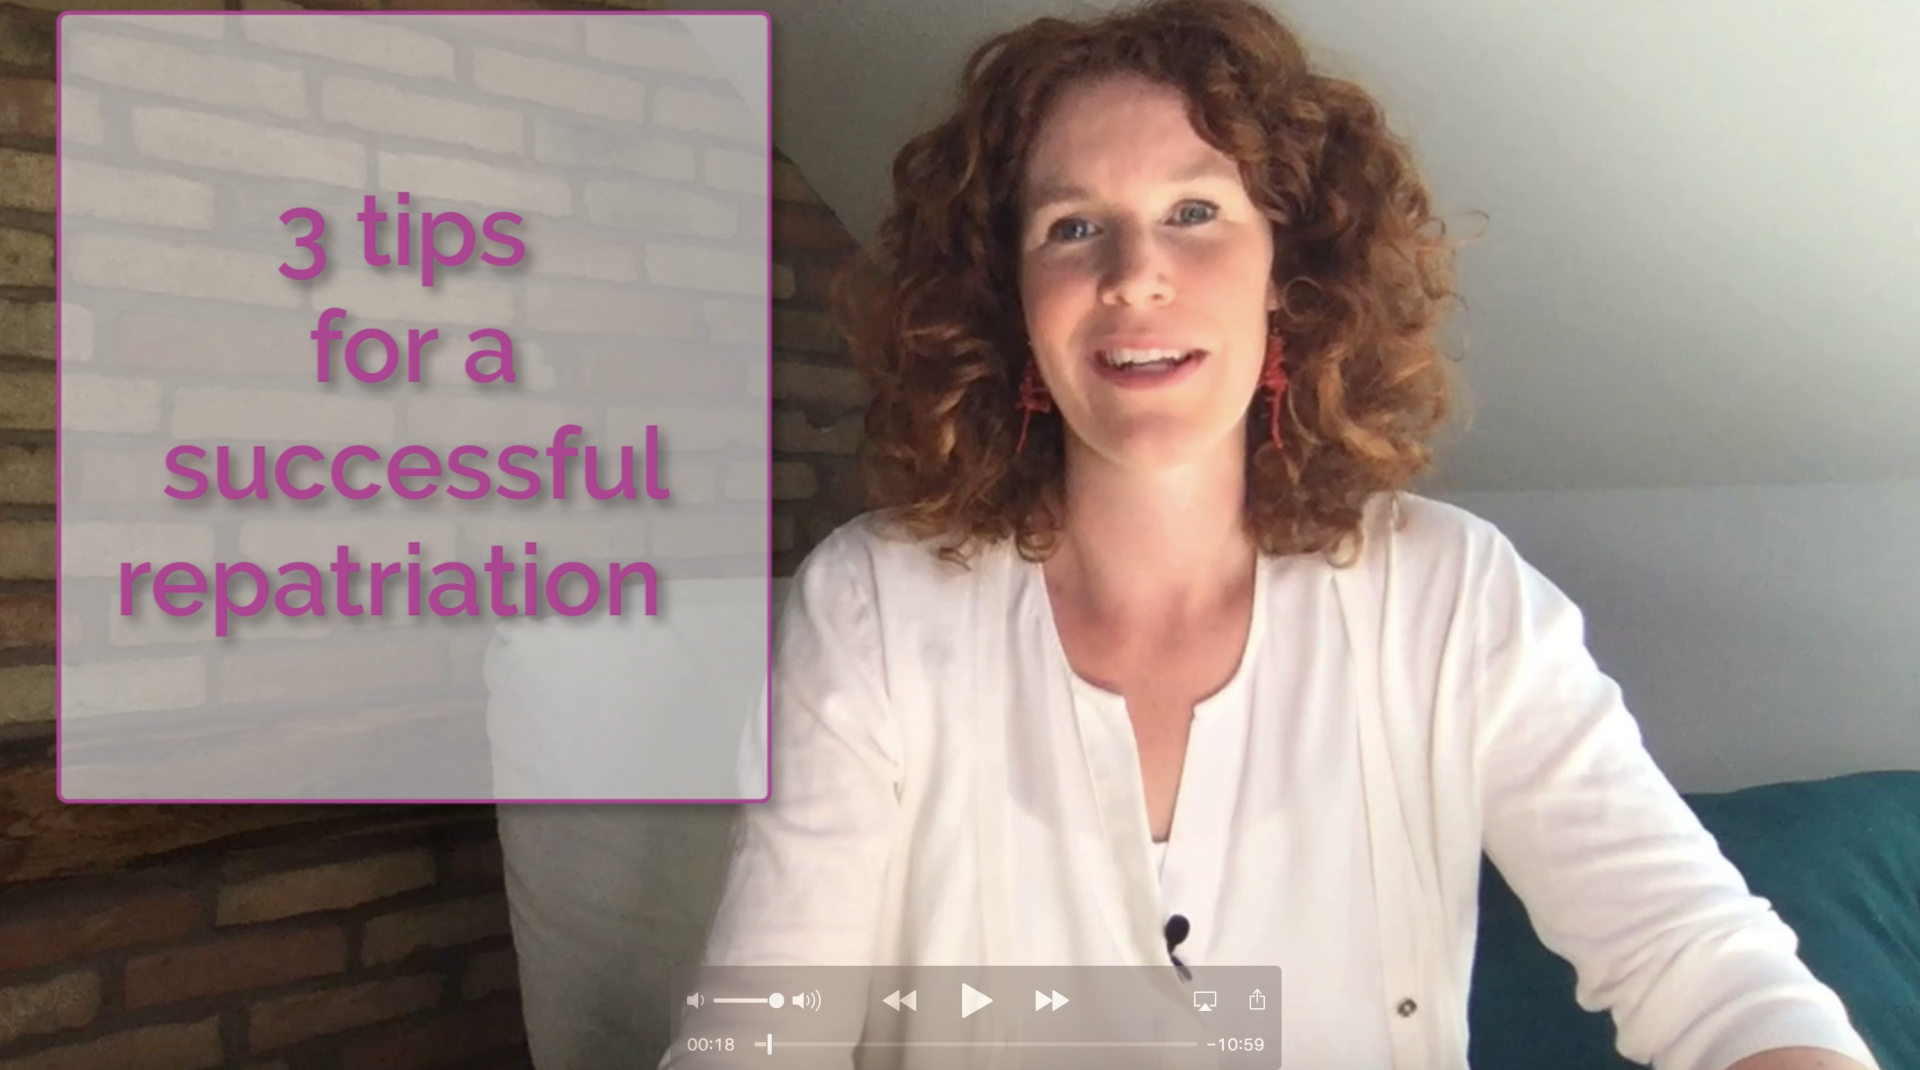 How to have a successful repatriation – 3 tips for expat partners